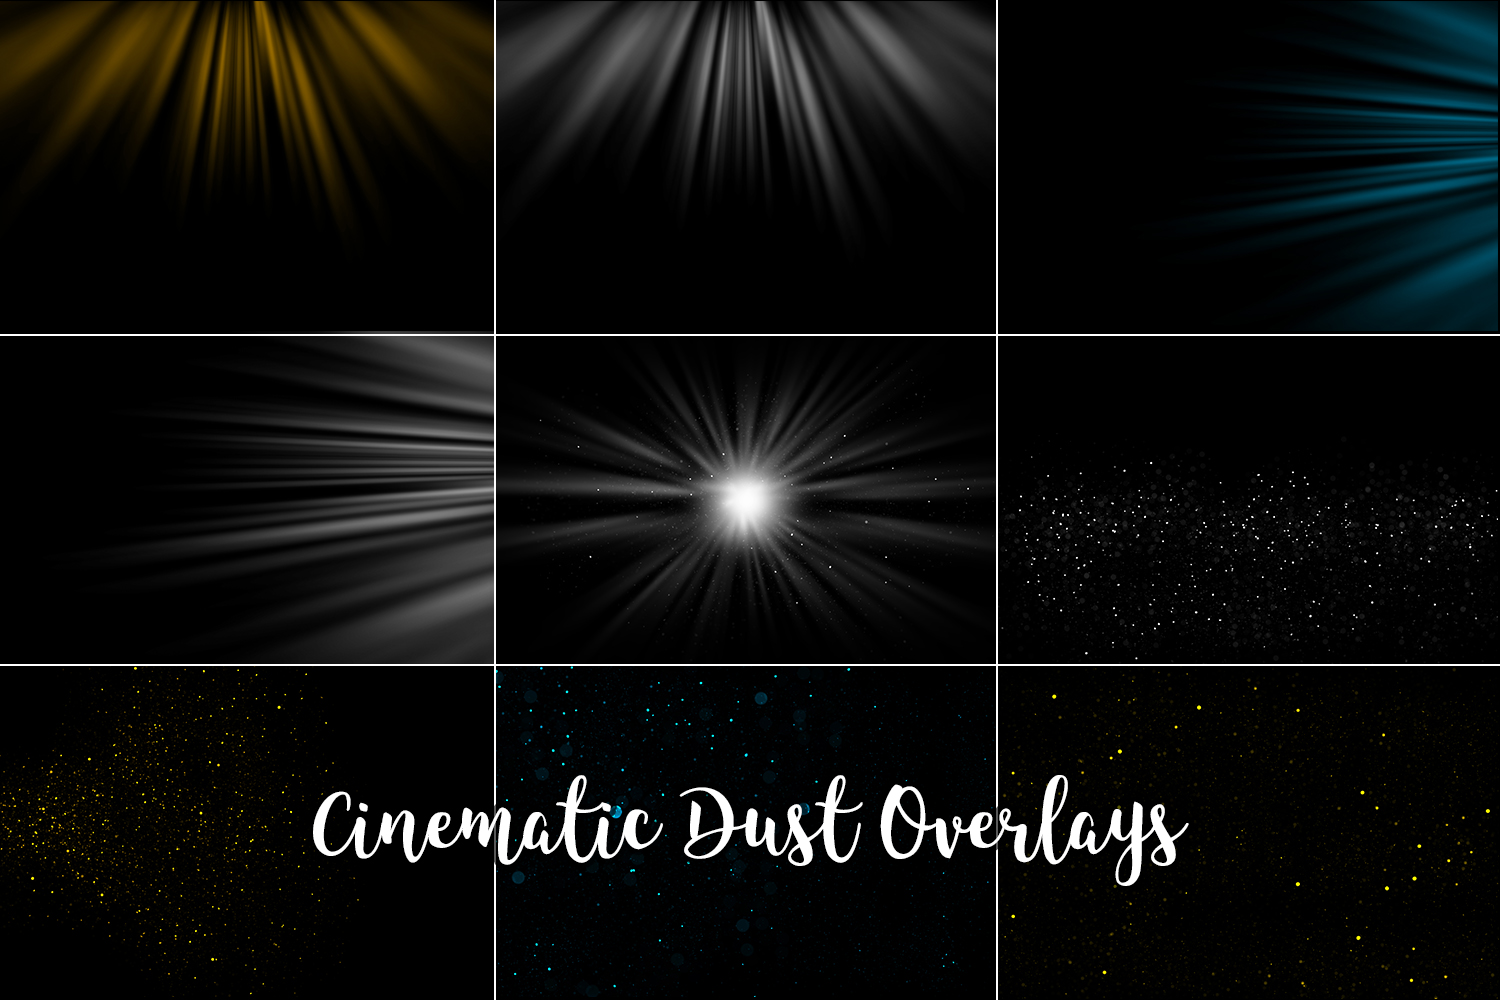 Cinematic Dust Photo Overlays, Bokeh Light Effects example image 4